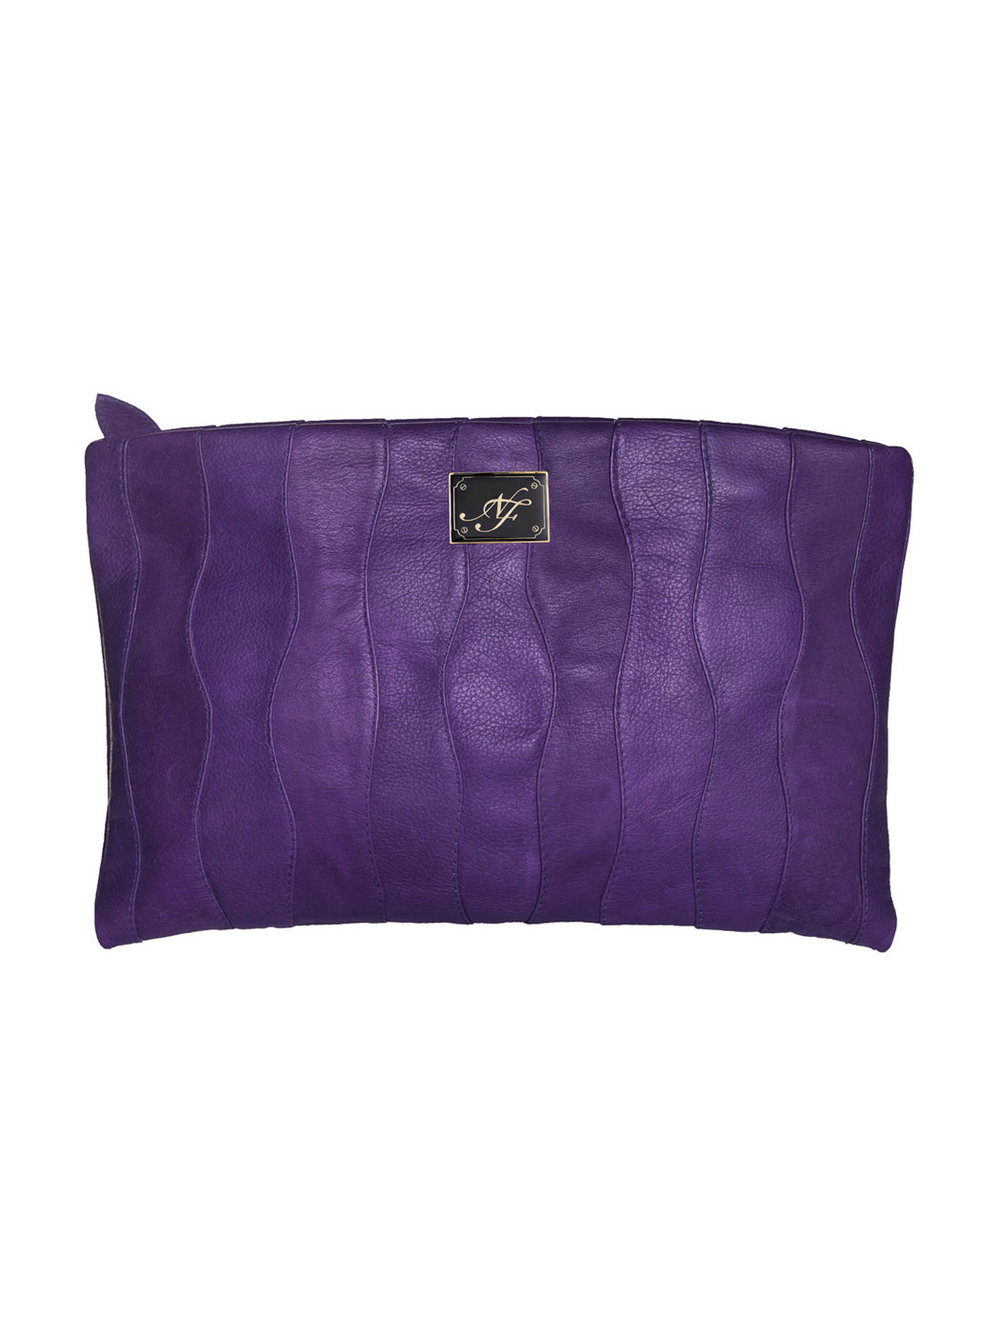 Copy of Clutch violeta - $210